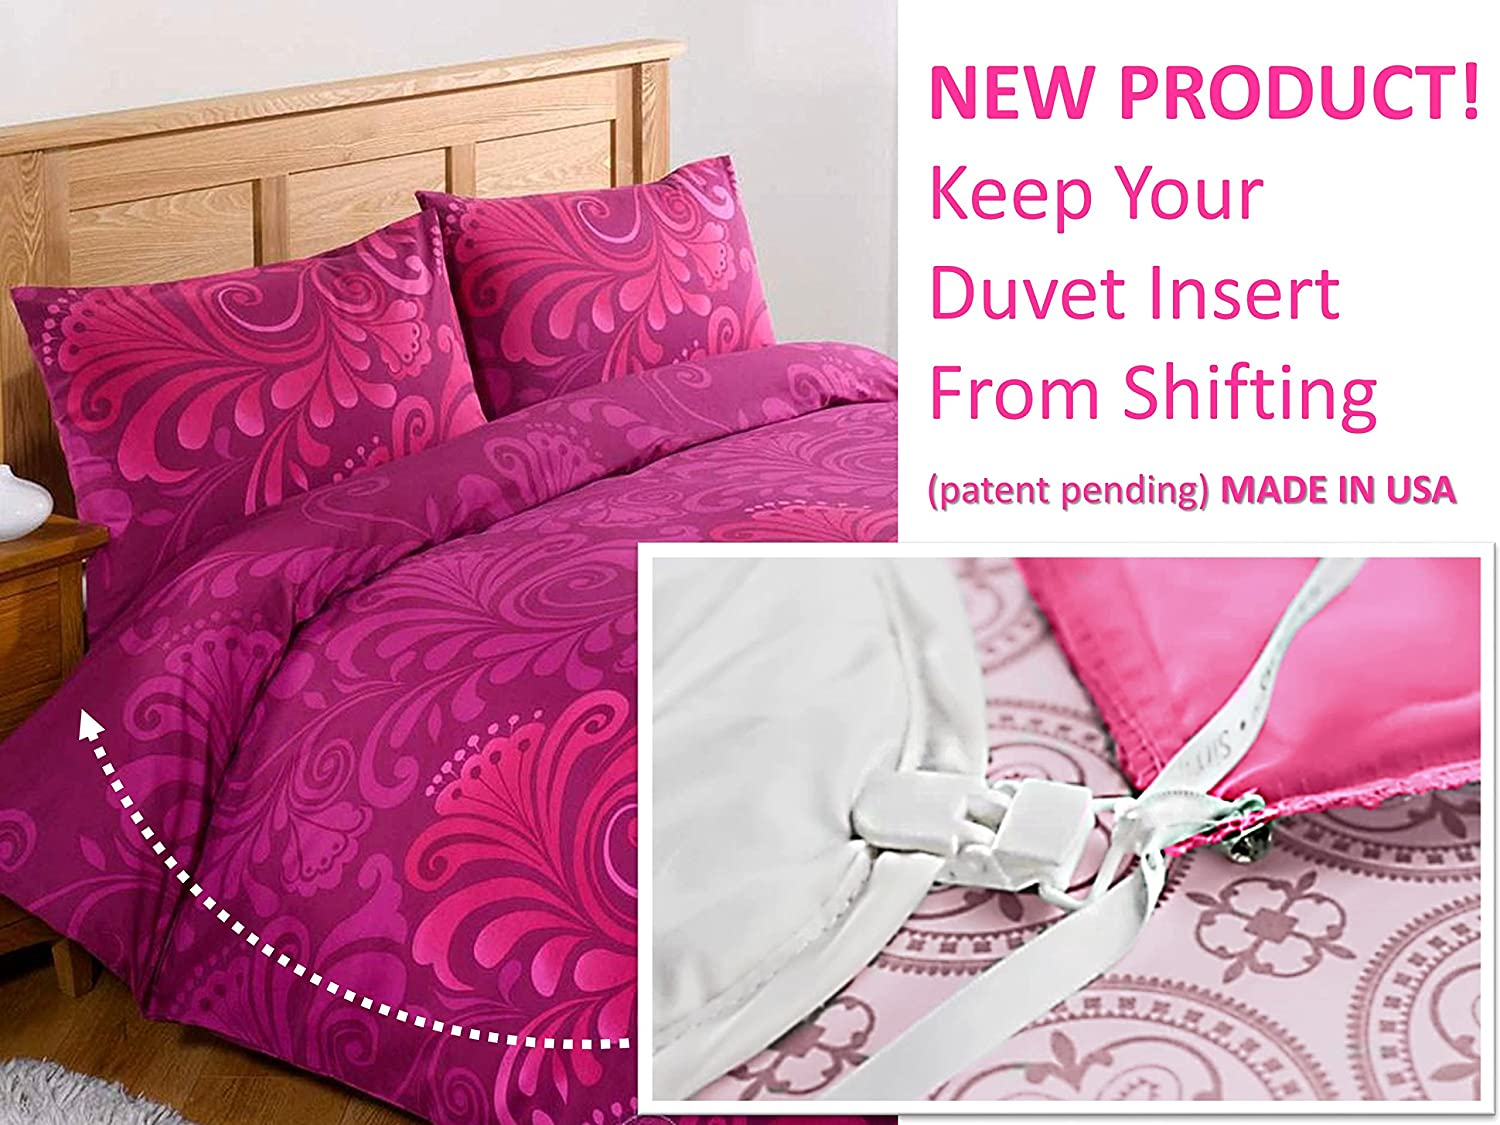 NEW! Duvet Clips and Sheet Fasteners- Complete Sleep Tight Bedding System- Includes Duvet Insert Clips, Pin Ties, and Sheet Fasteners (16- Pieces Secure up to 3 Beds + 1 Set of Sheets ) MADE IN USA